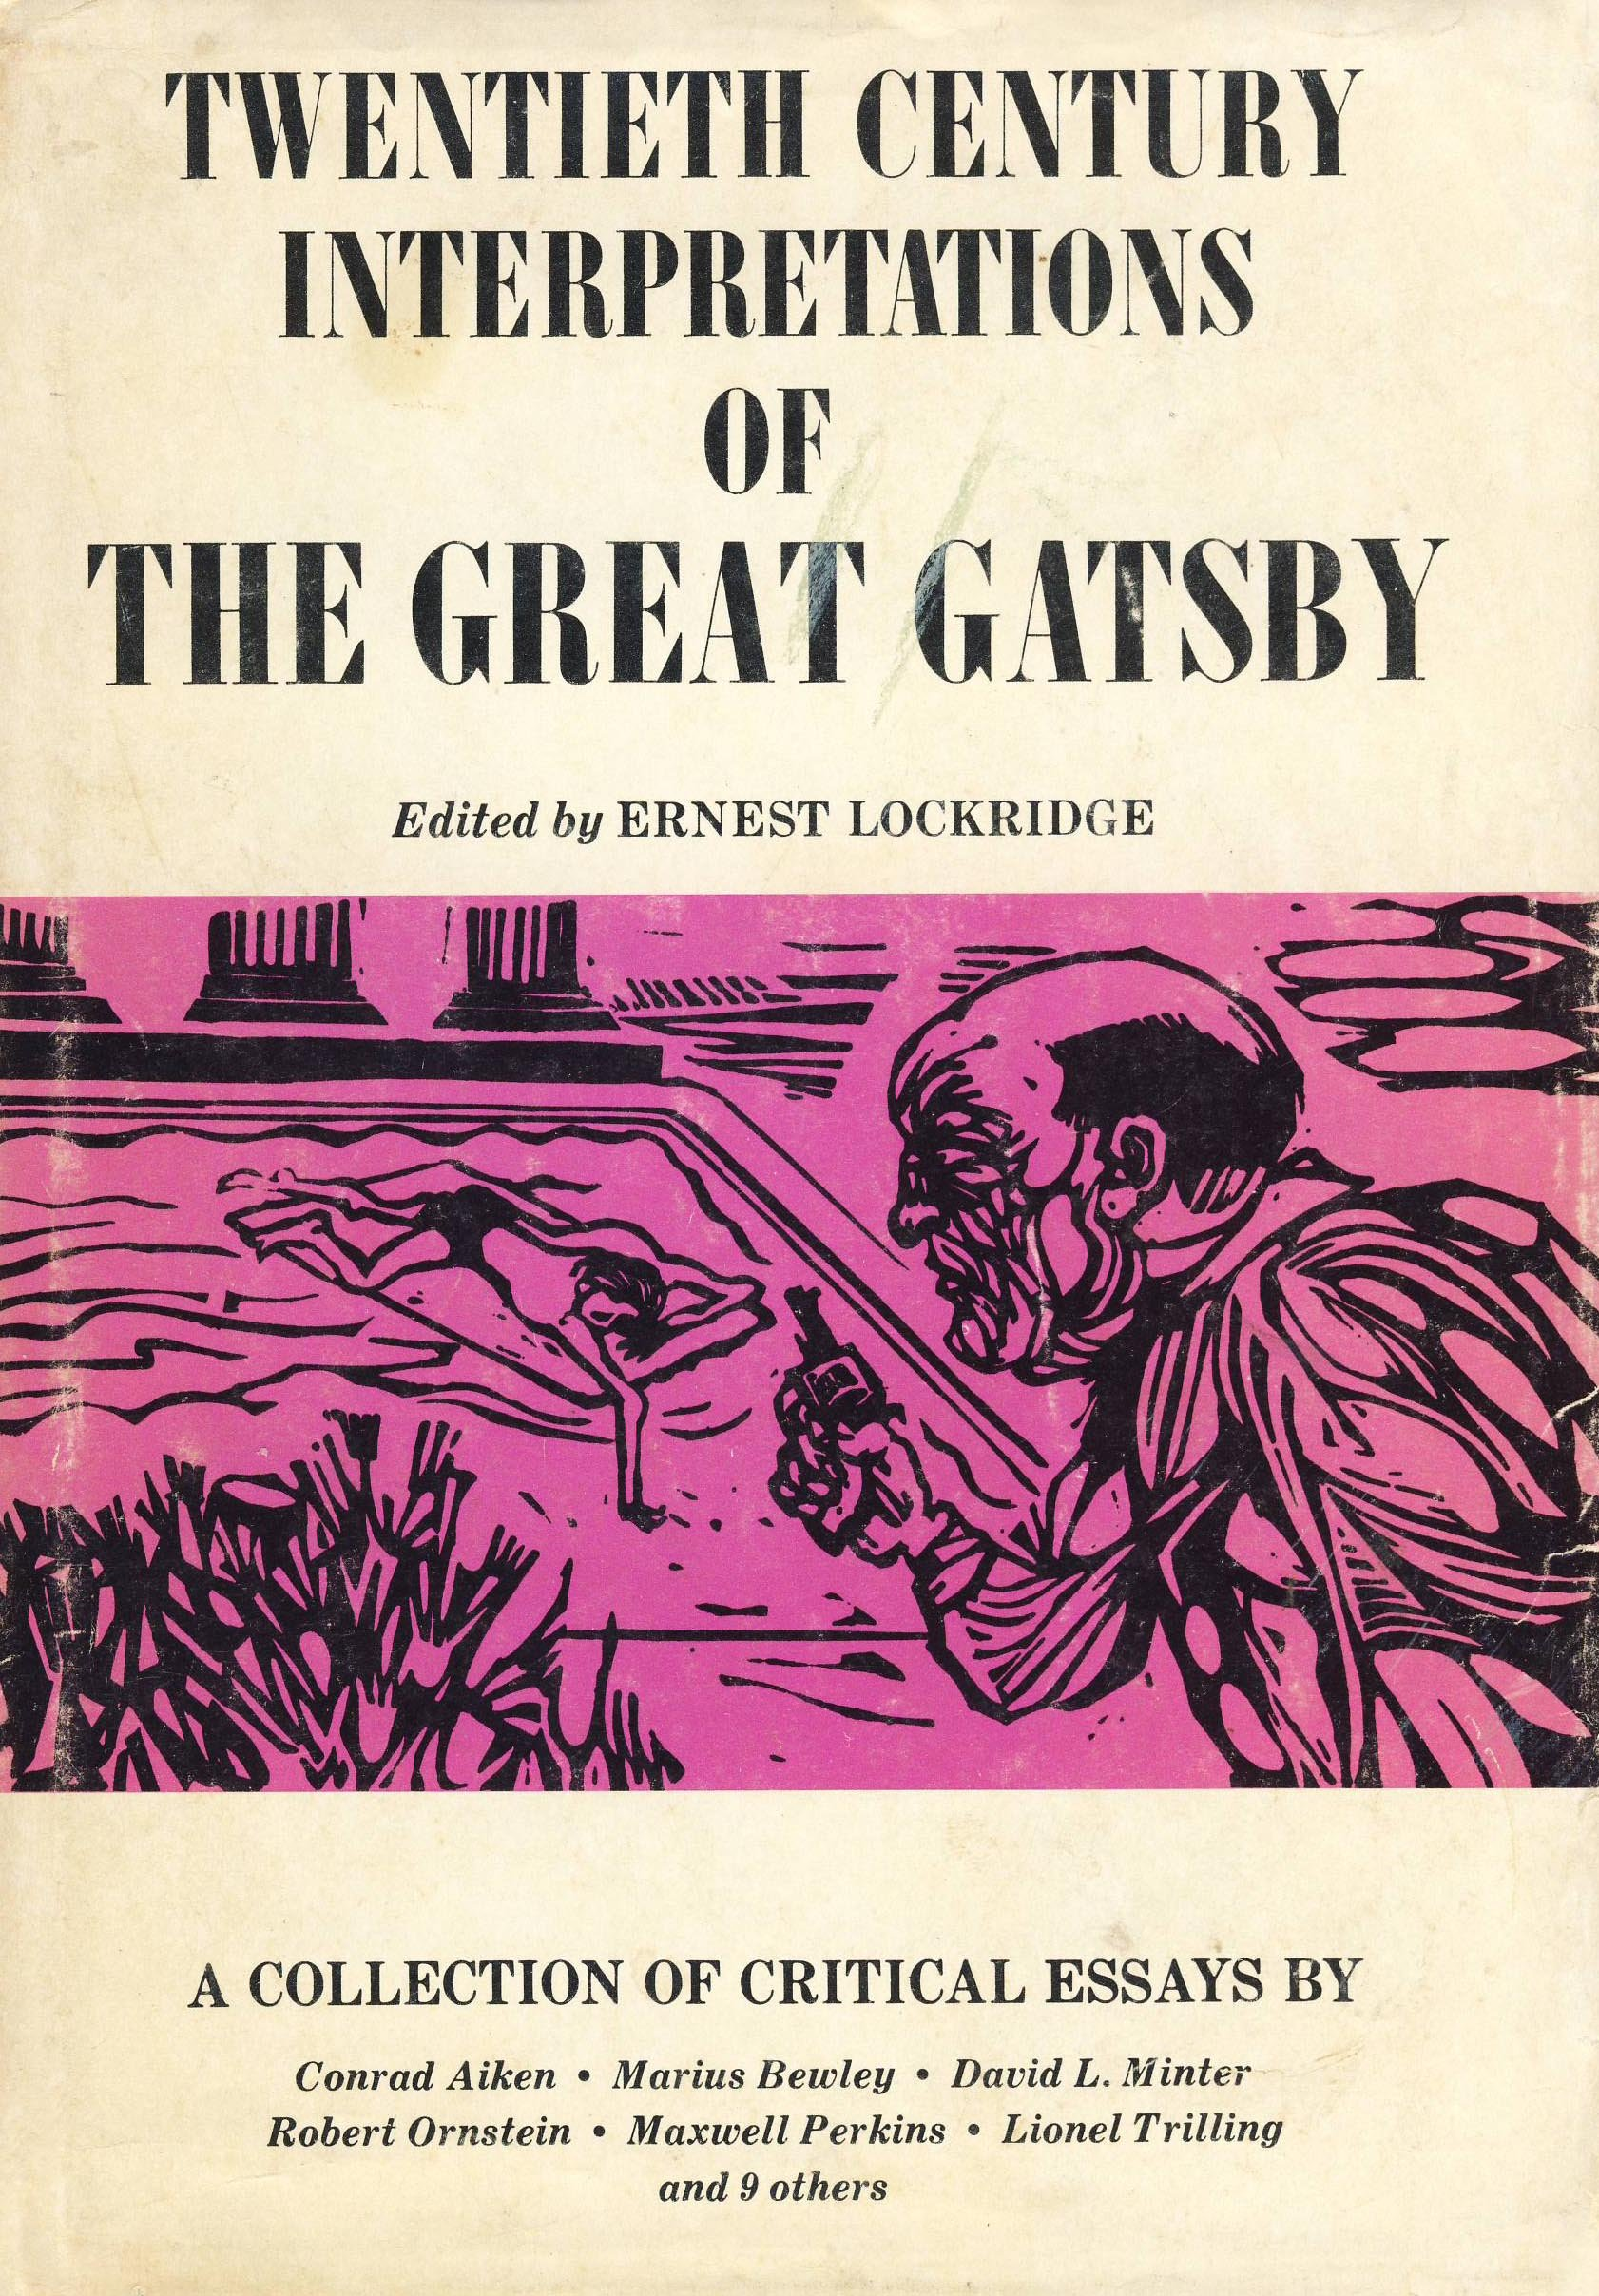 Ap English Essays Amazoncom Twentieth Century Interpretations Of The Great Gatsby A  Collection Of Critical Essays  Ernest Lockridge Books Essay Paper Help also Example Of A Good Thesis Statement For An Essay Amazoncom Twentieth Century Interpretations Of The Great Gatsby A  Order Literature Review